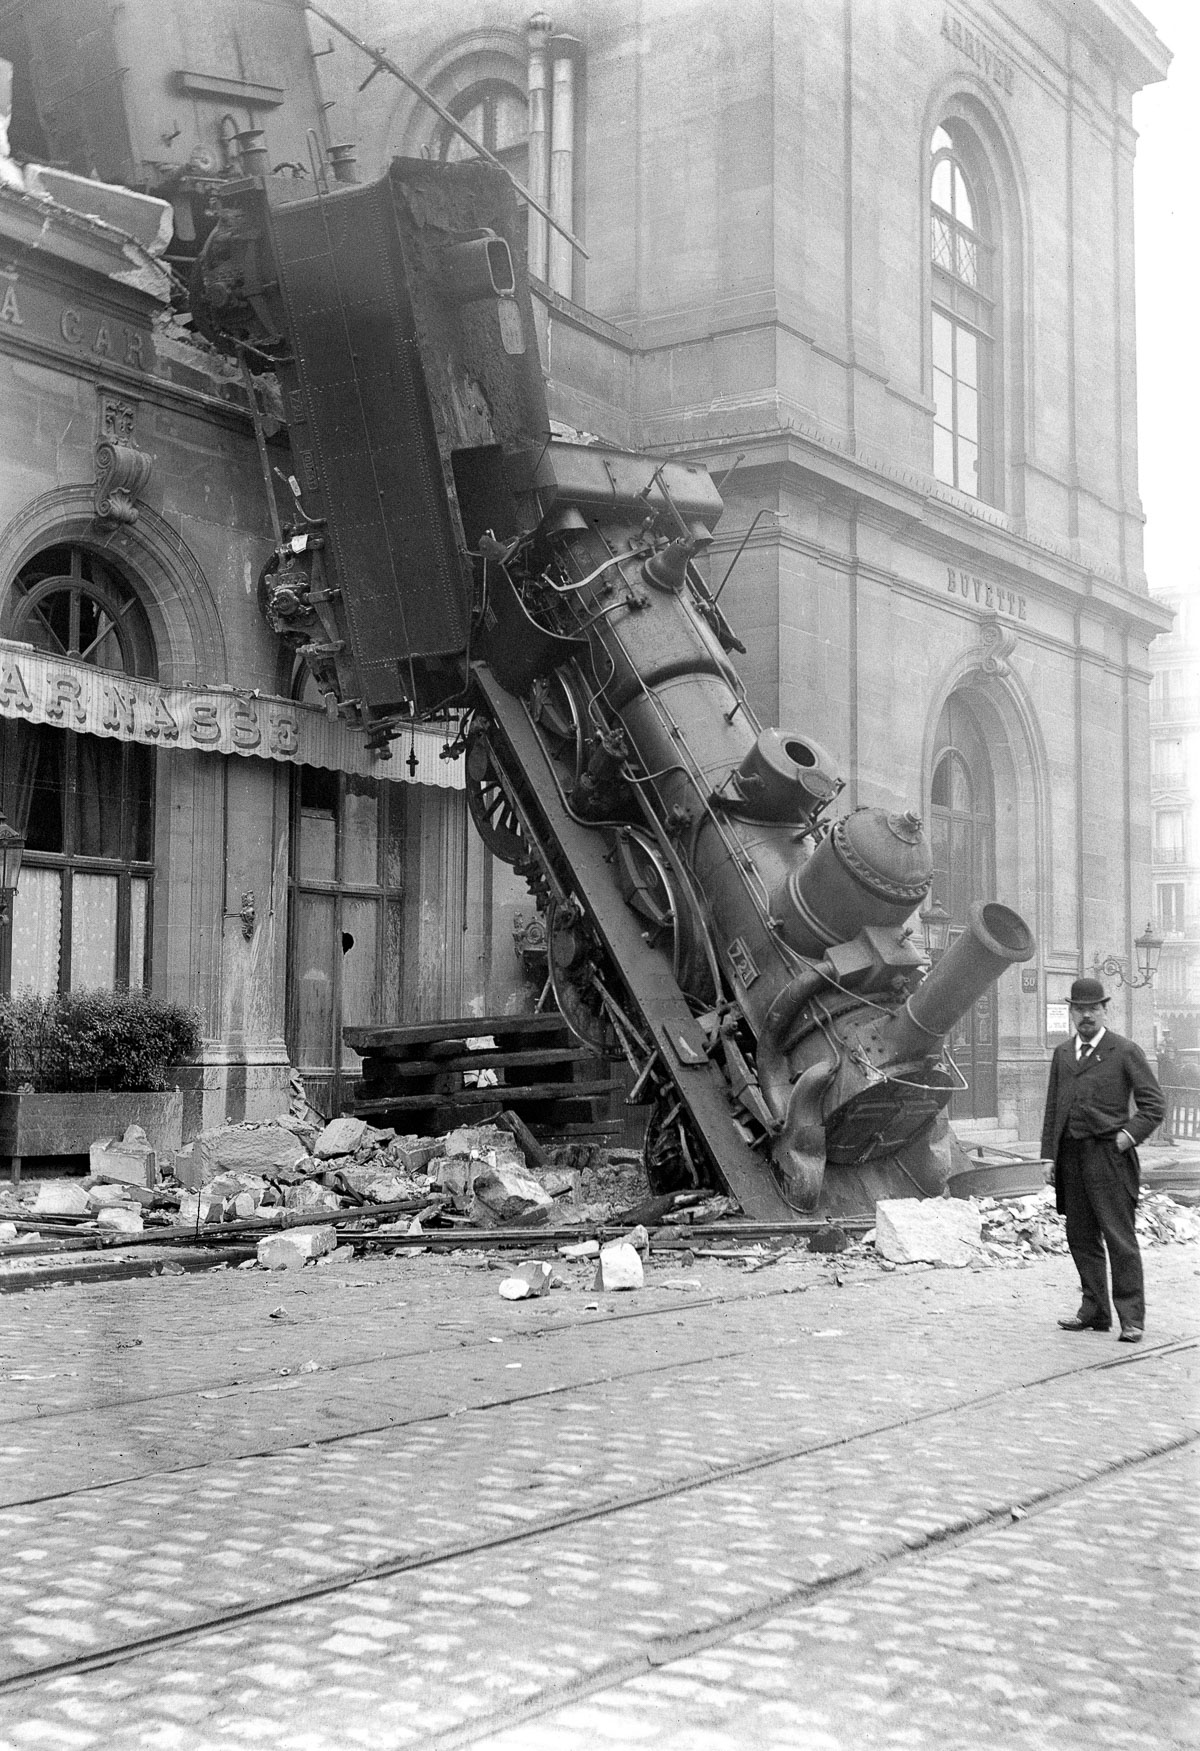 22 Oct 1895, Paris, France --- Accident of the Montparnasse railway station in Paris (France). On October 22, 1895. --- Image by © adoc-photos/Corbis